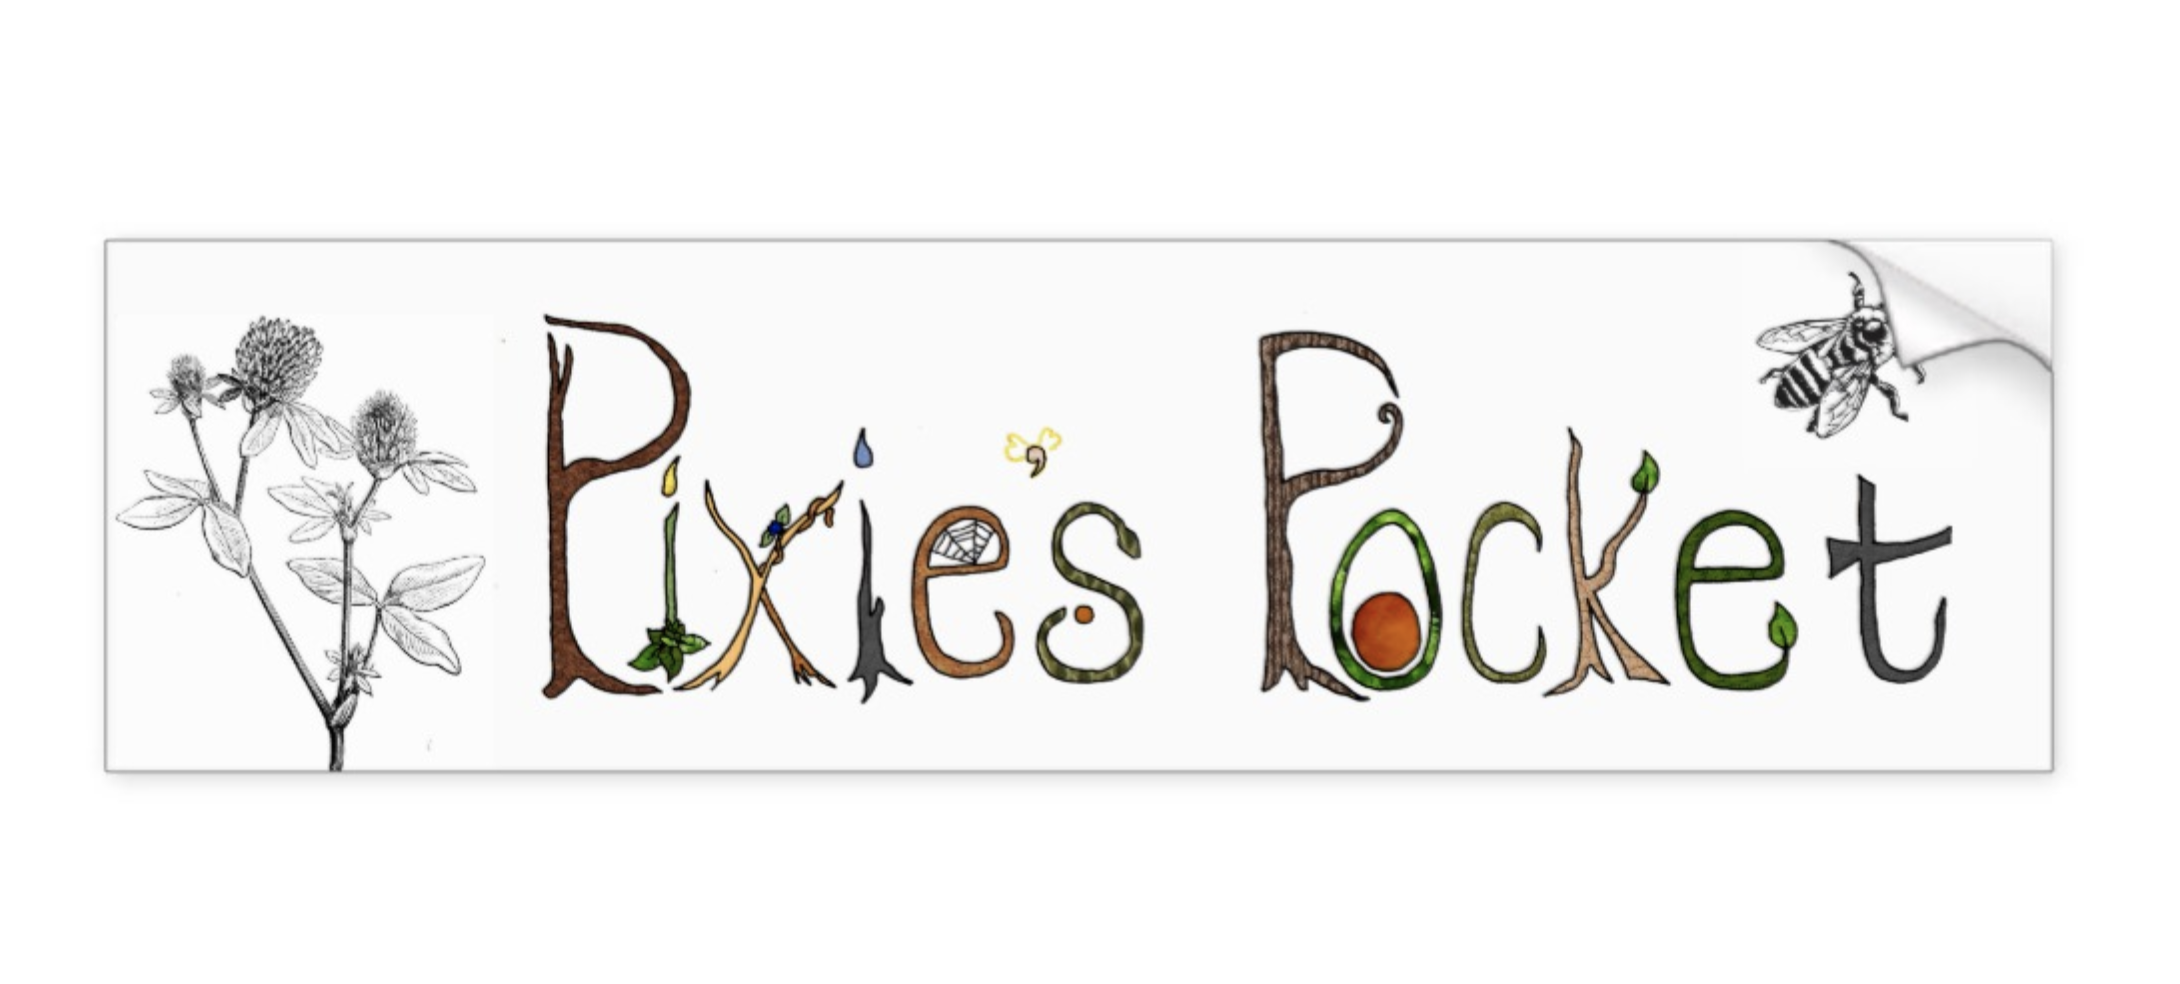 pixie's pocket logo bumper sticker